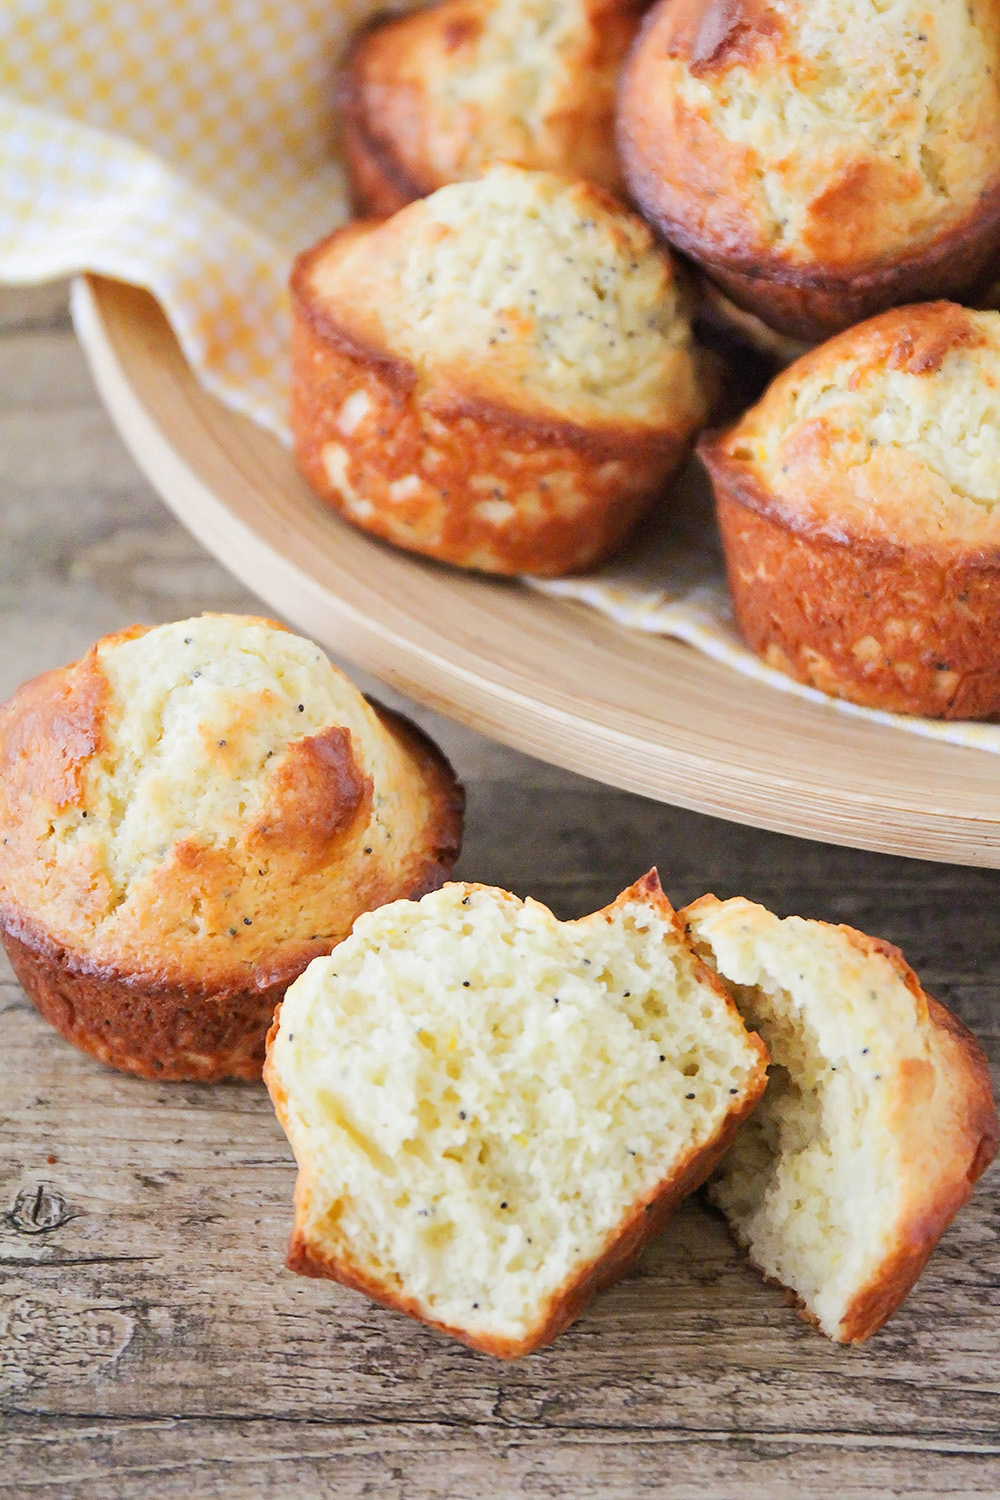 These lemon poppy seed muffins are light and tender, and such a delicious combination of flavors!